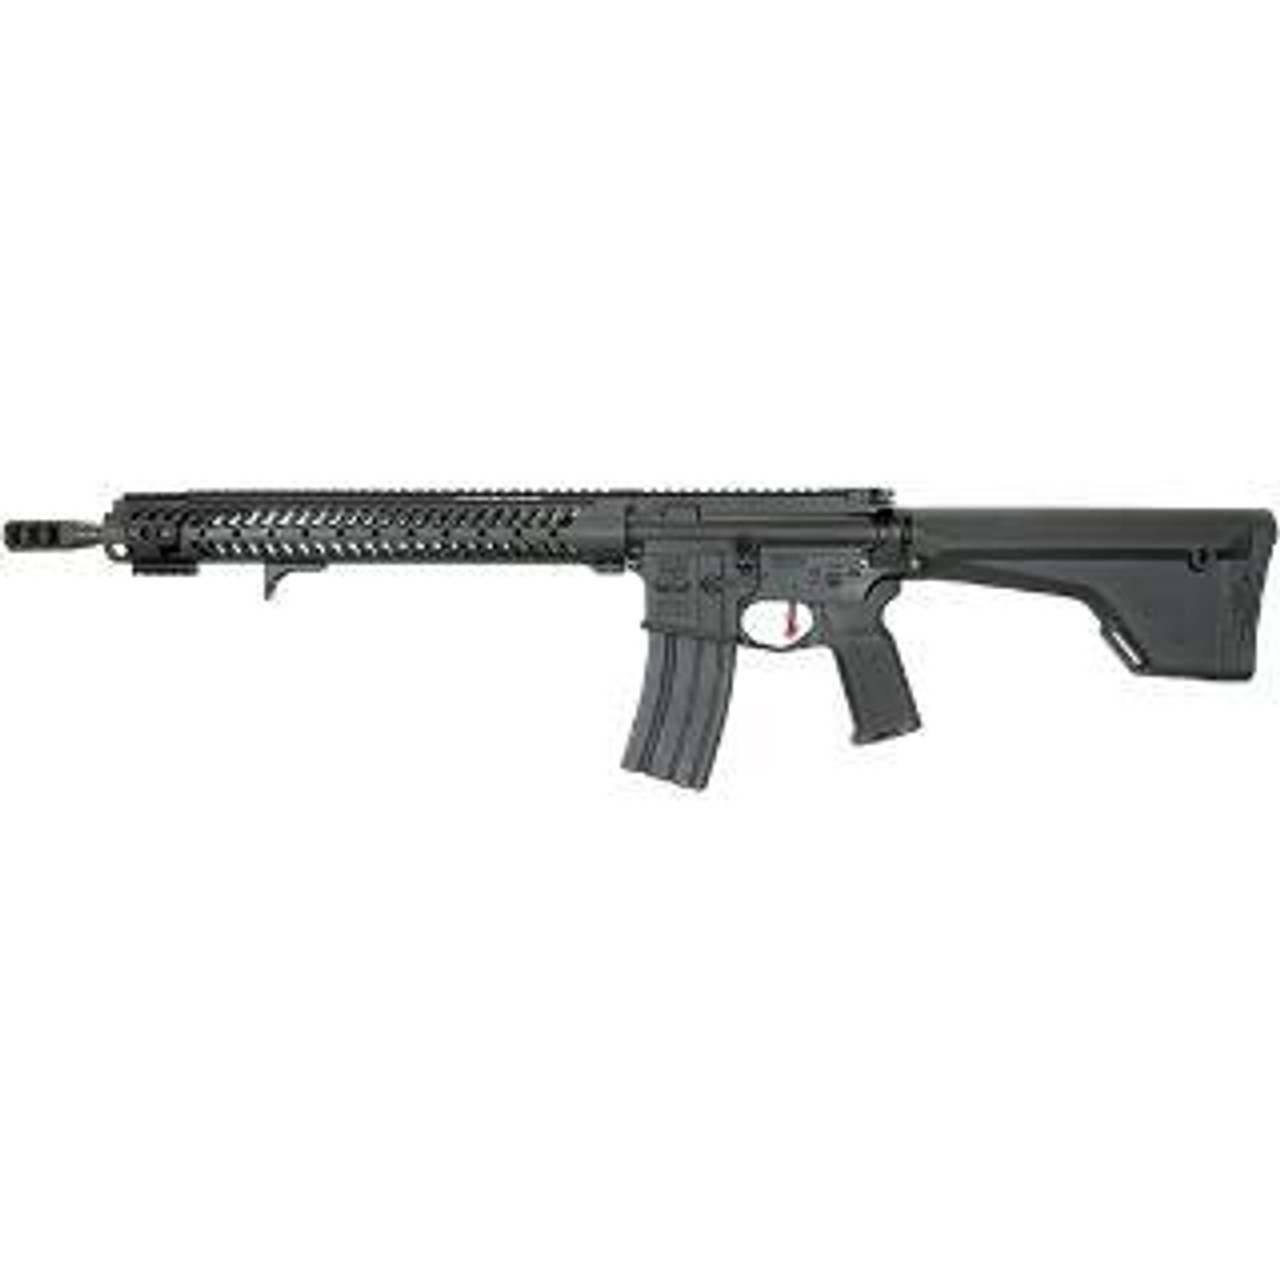 Adams Arms C.O.R Ultra Lite CALIFORNIA LEGAL- 5.56